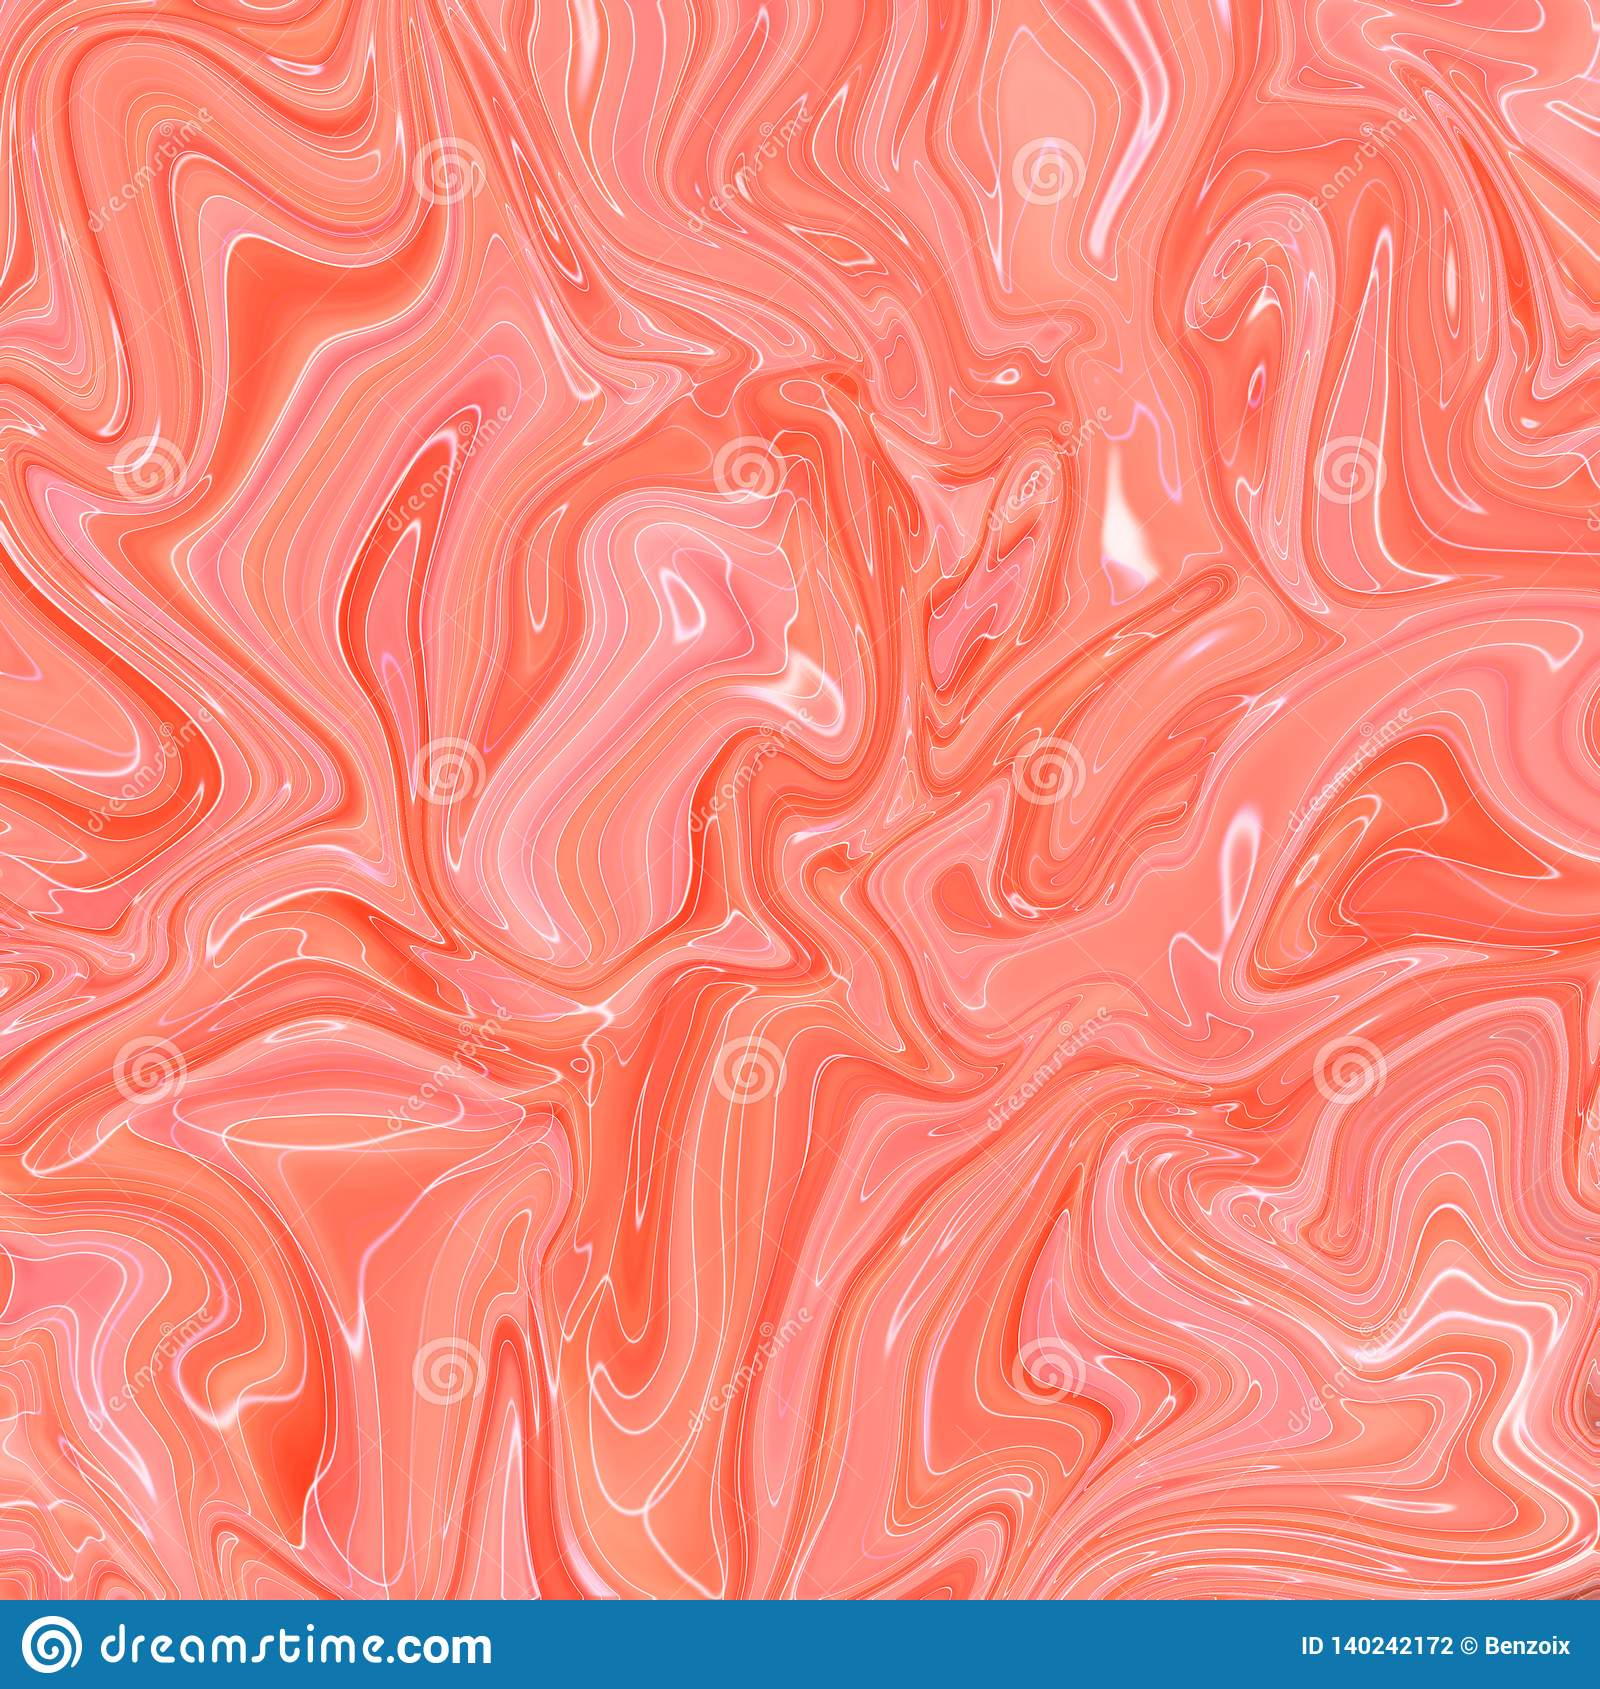 Liquid Marbling Paint Texture Background Fluid Painting Abstract